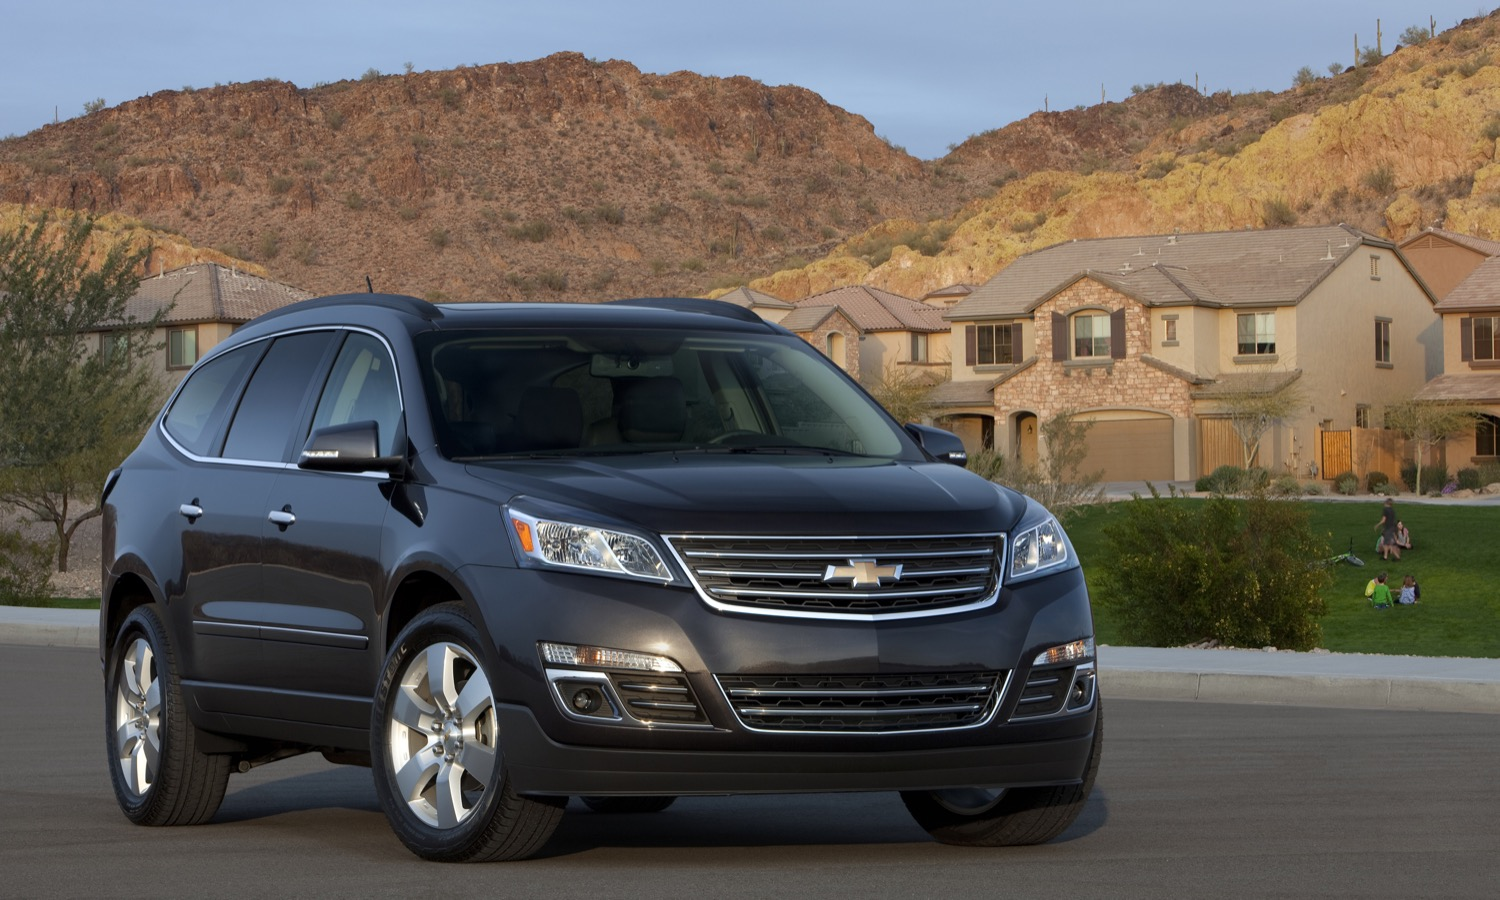 2017 Chevy Traverse Production  Manufacturing  GM Authority